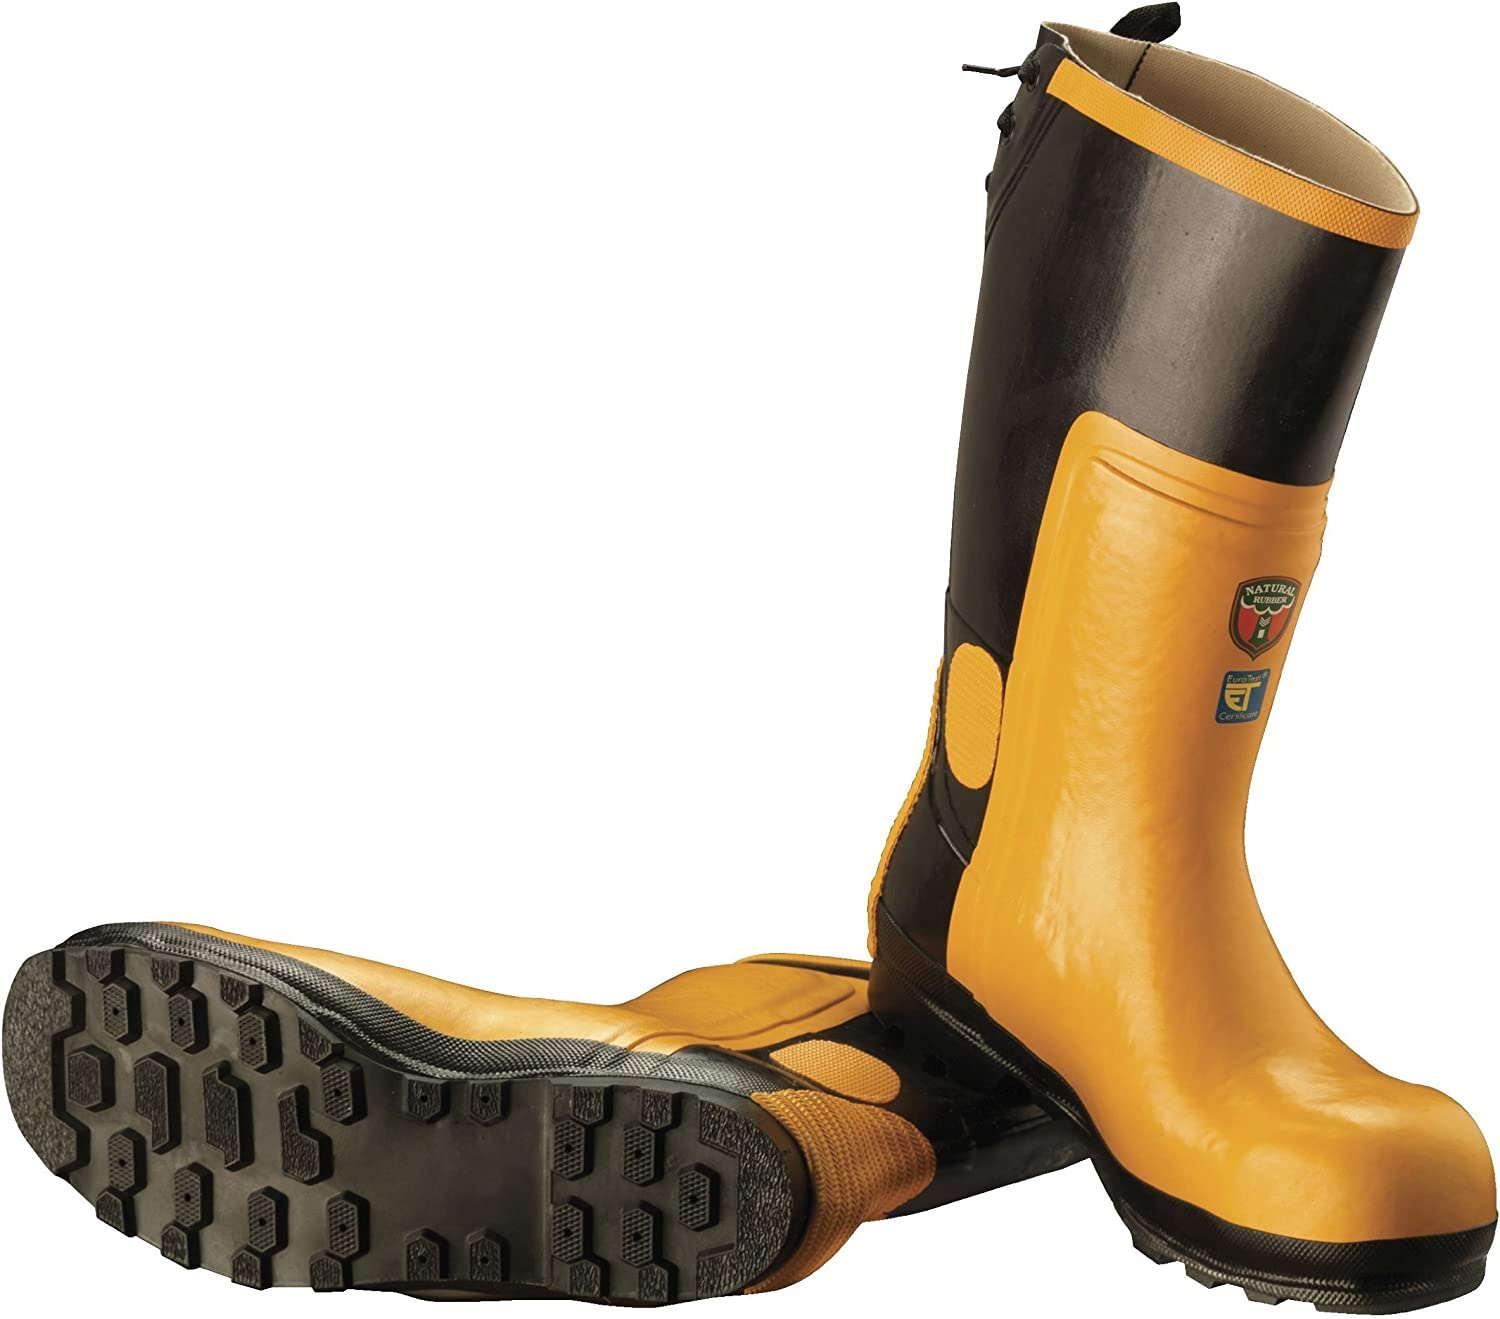 Husqvarna Technical Boots Protective Safety PPE Toe New Free Next Day Delivery